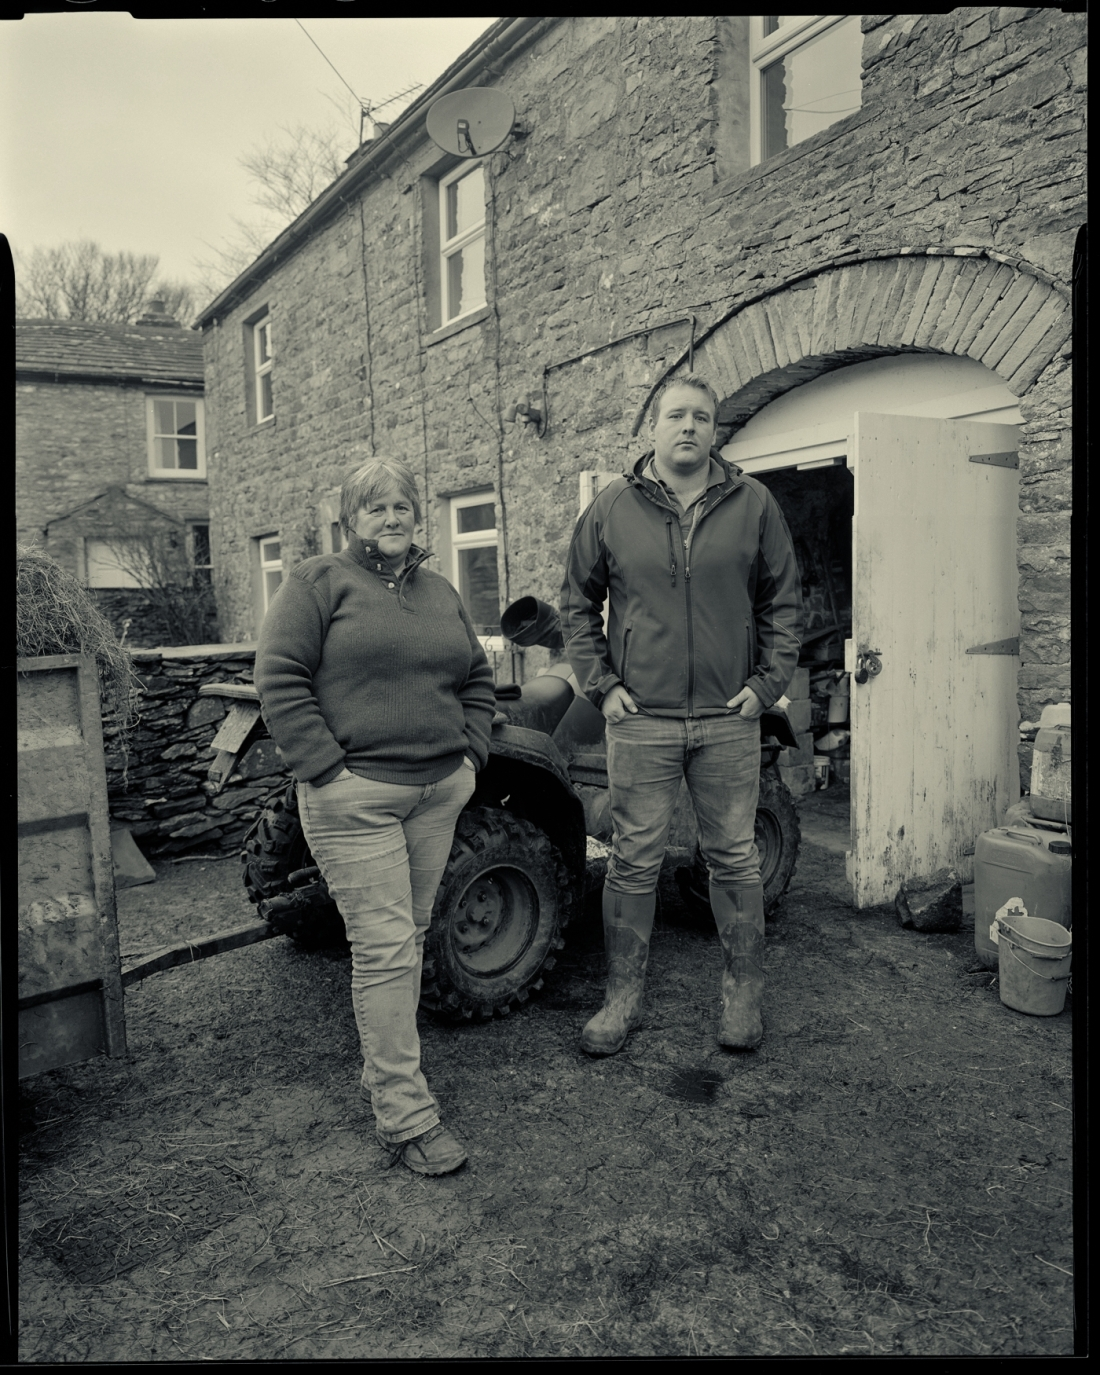 Sheena Pratt and her son James at Dale View, Yorkshire Dales